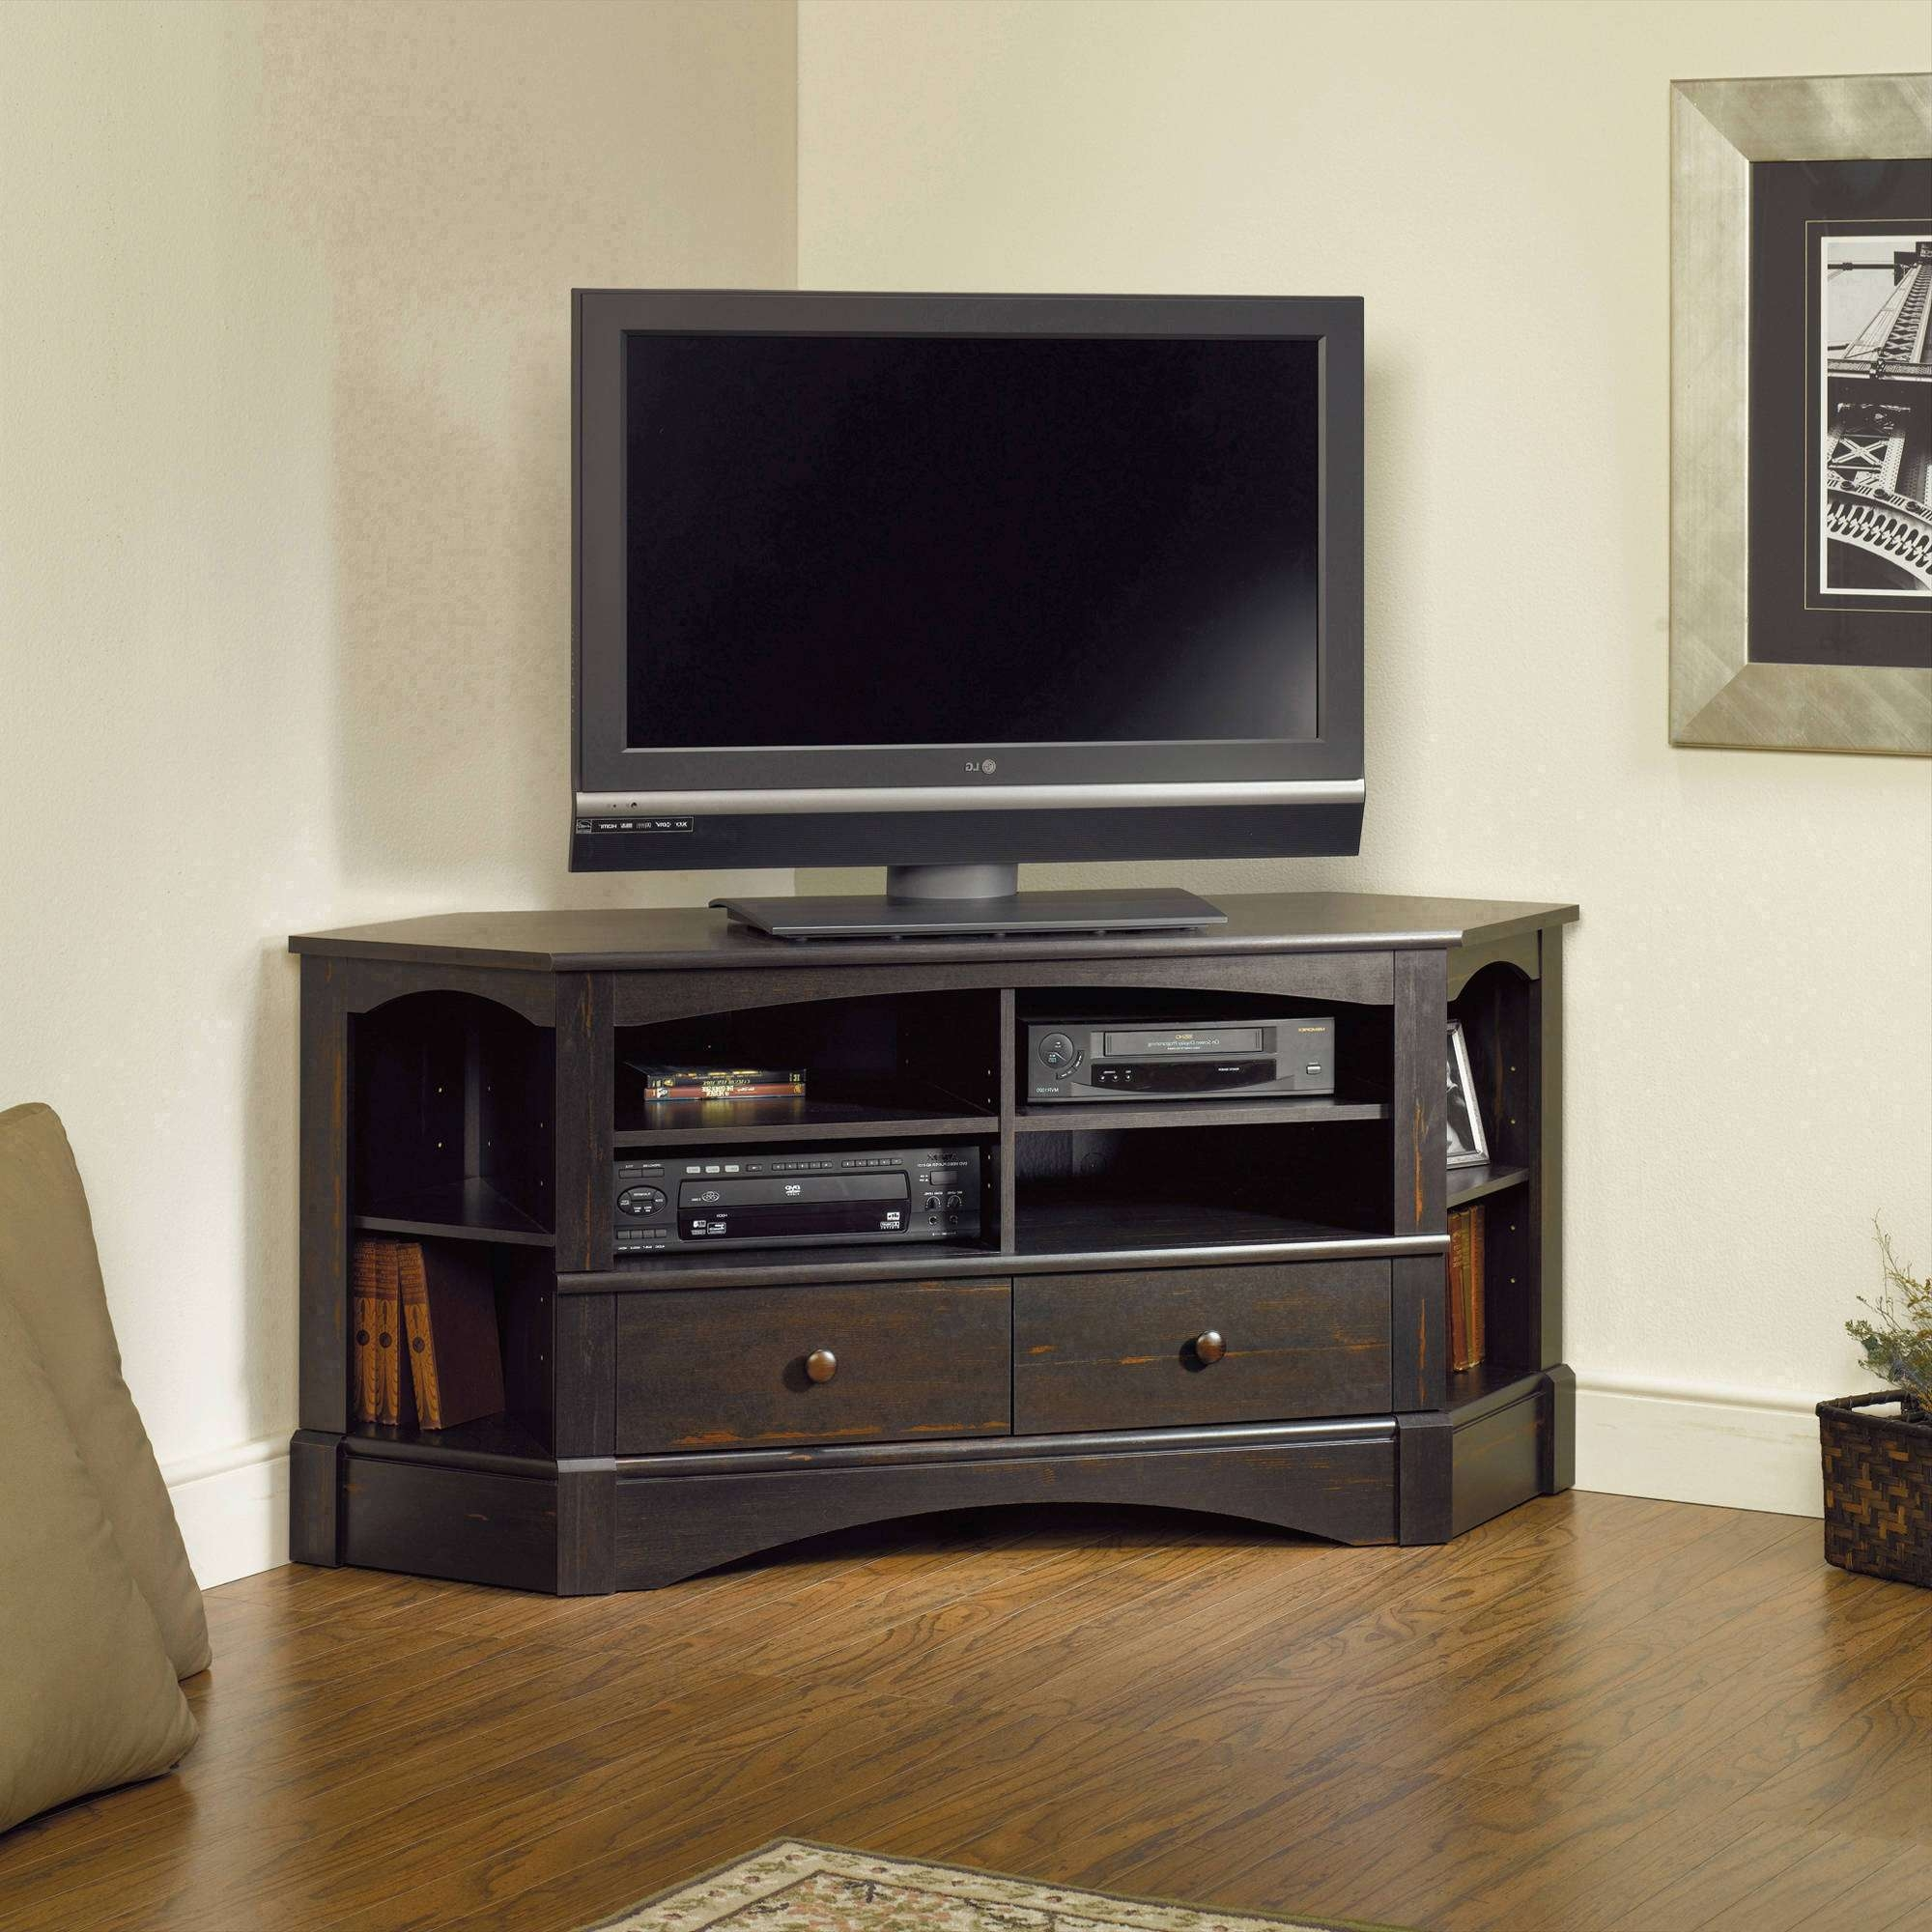 Tv Stand : 32 Unusual 55 Inch Corner Tv Stand With Mount Images Inside Unusual Tv Stands (View 14 of 15)